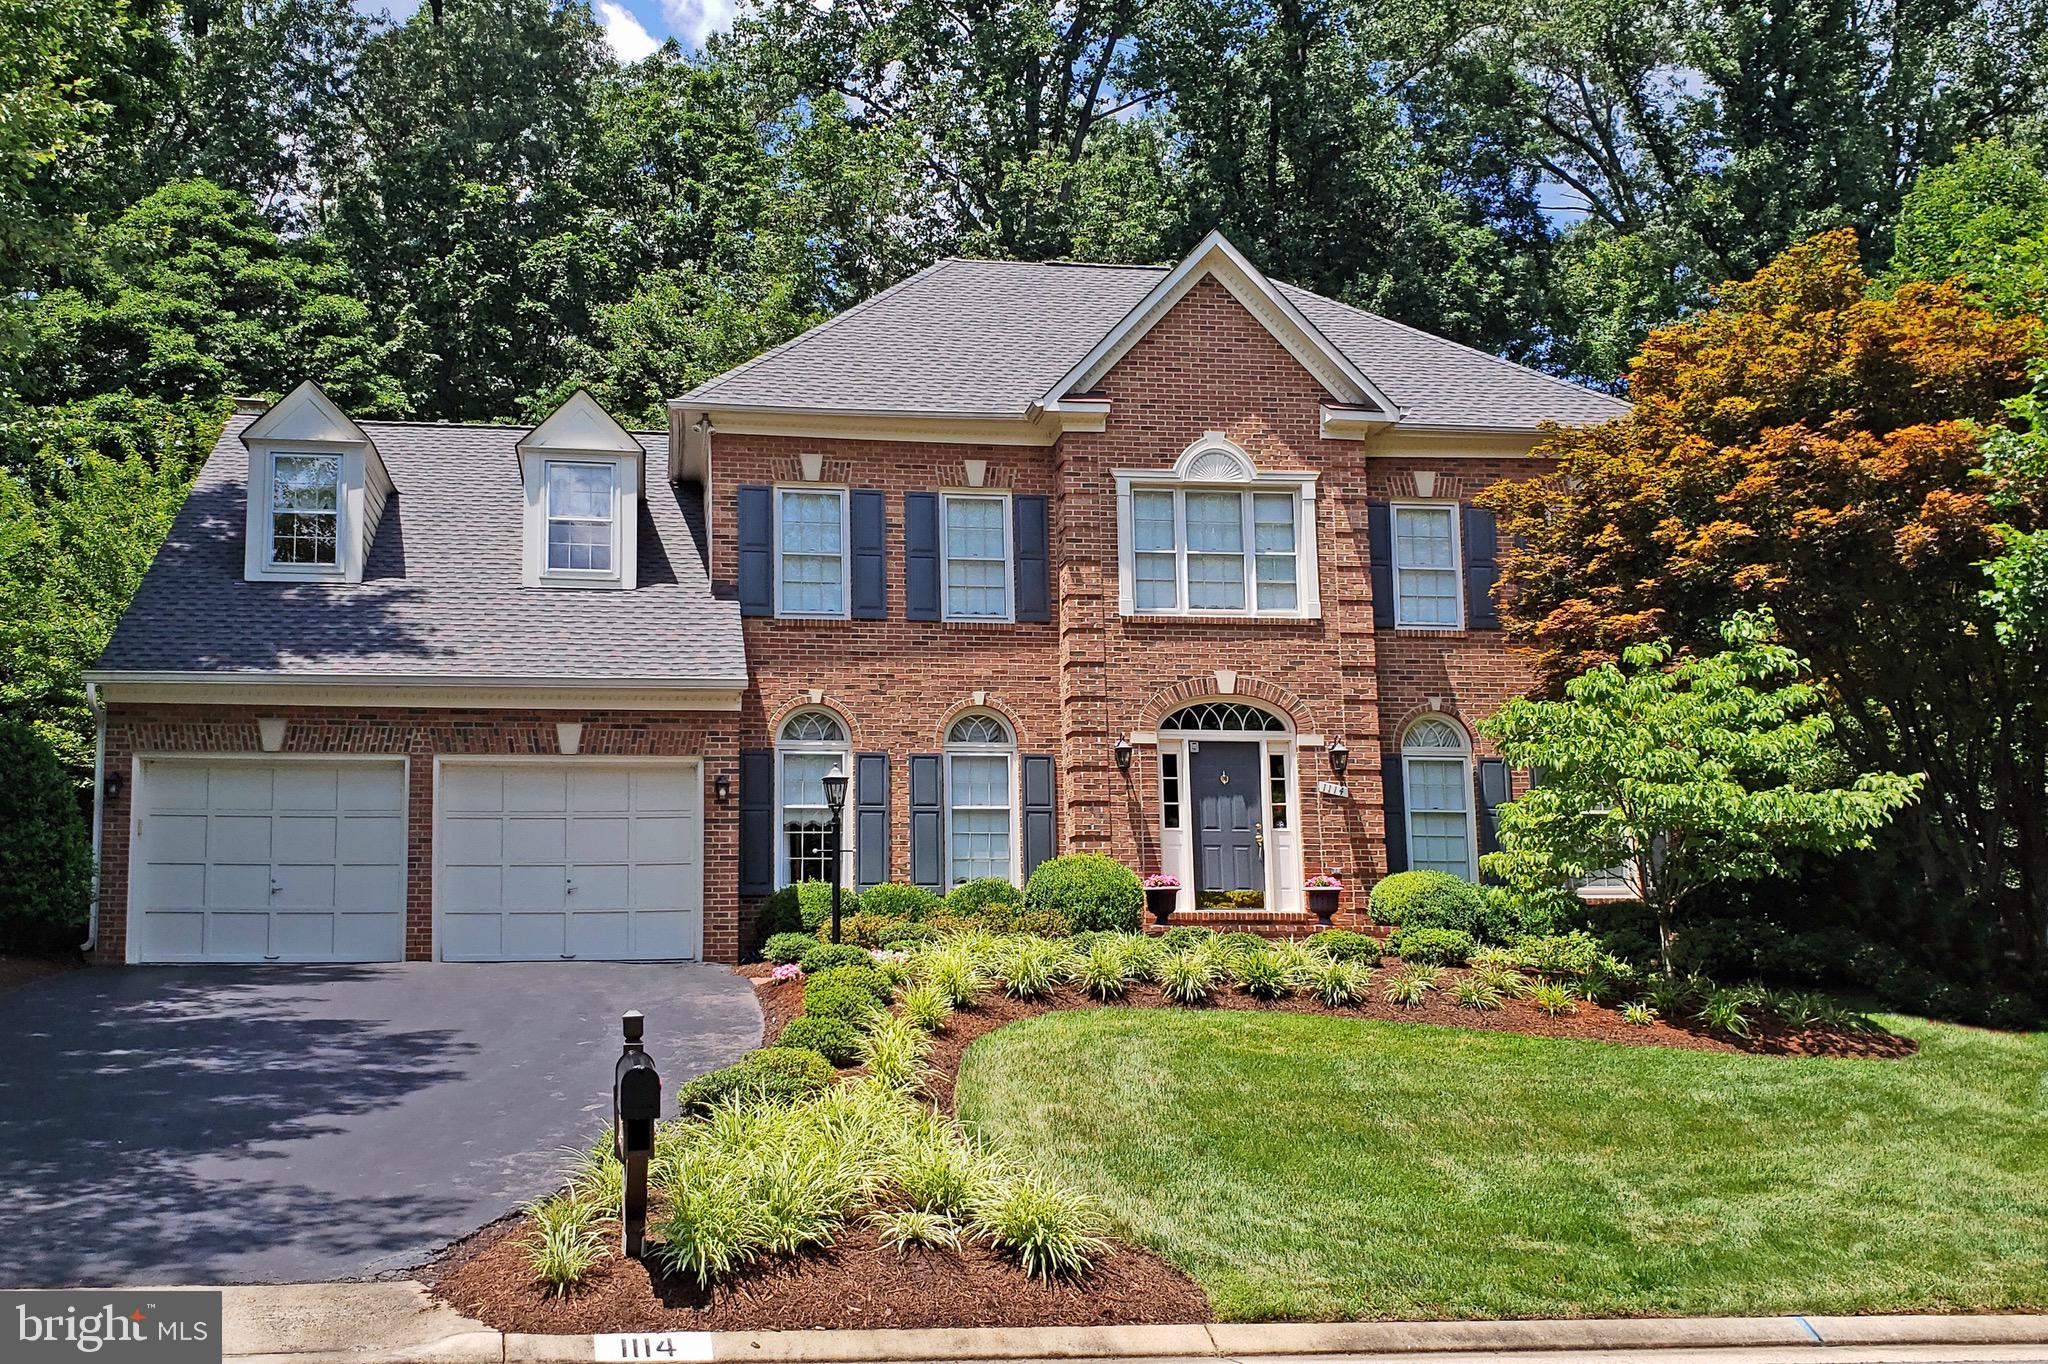 1114 ROUND PEBBLE LANE, RESTON, VA 20194